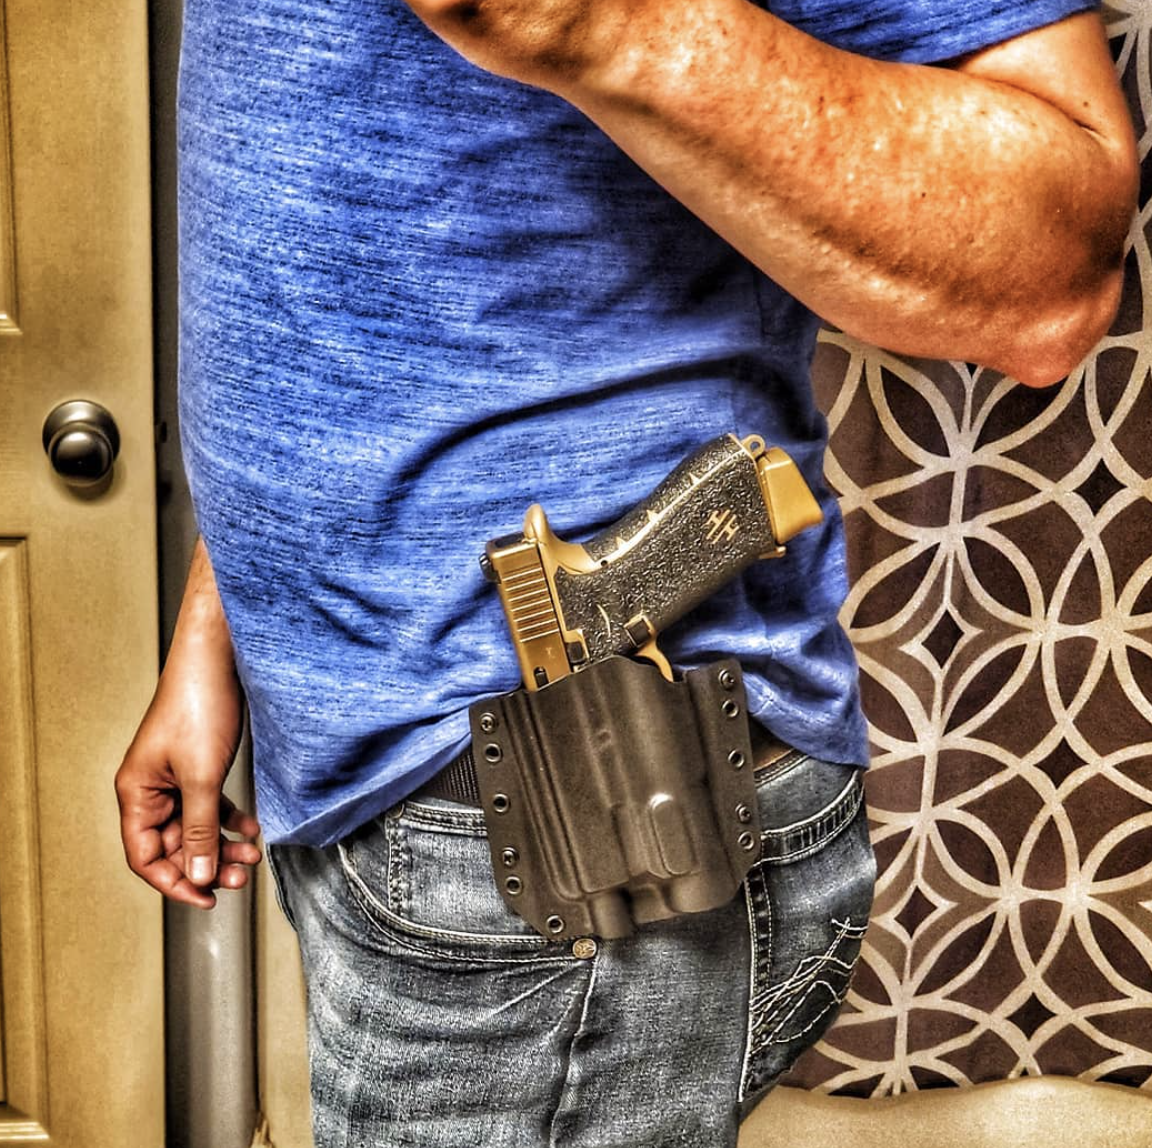 Testing out my new @bravoconcealment light bearing holster